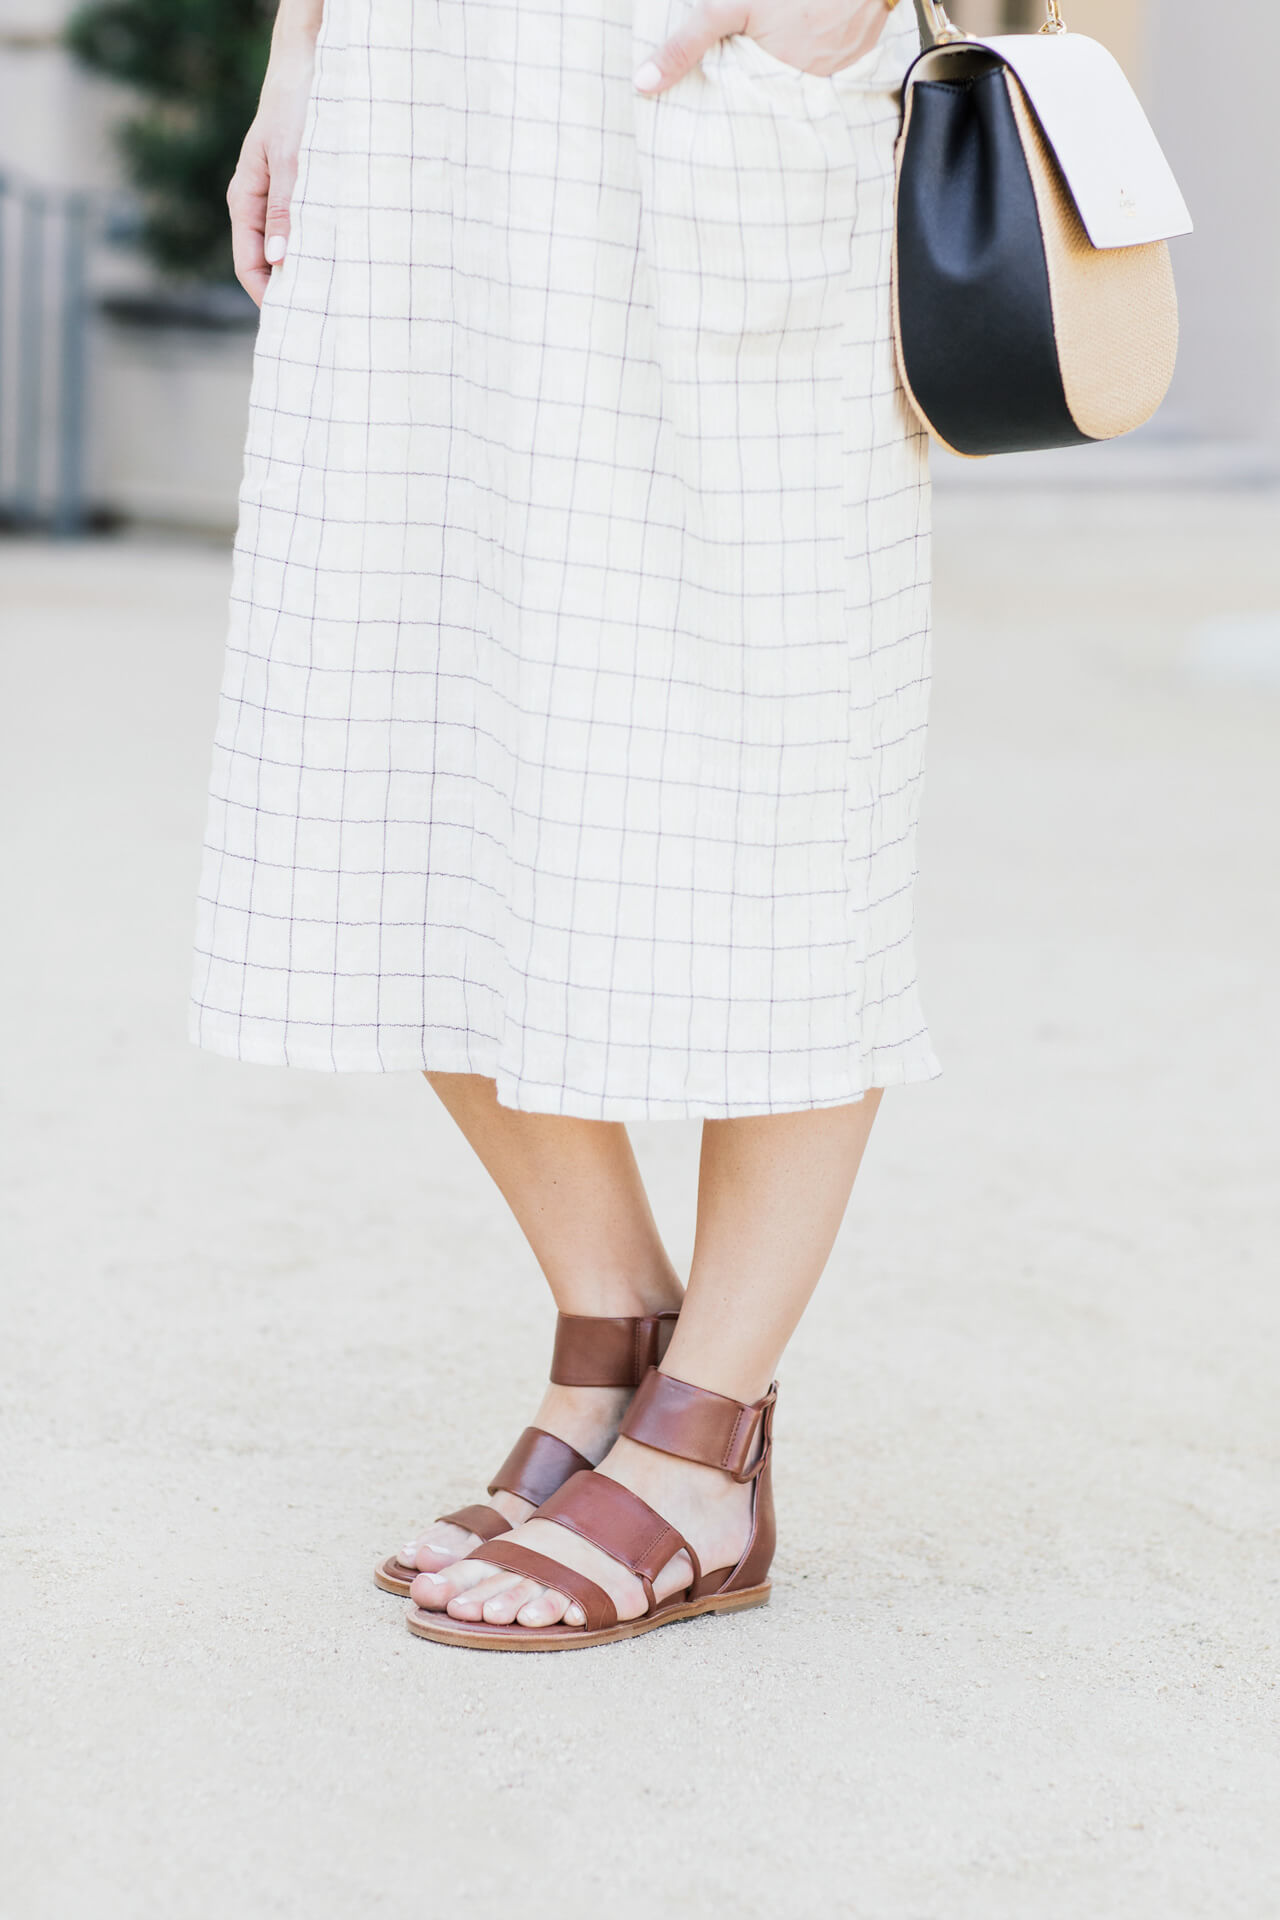 Love these Isola strappy summer sandals